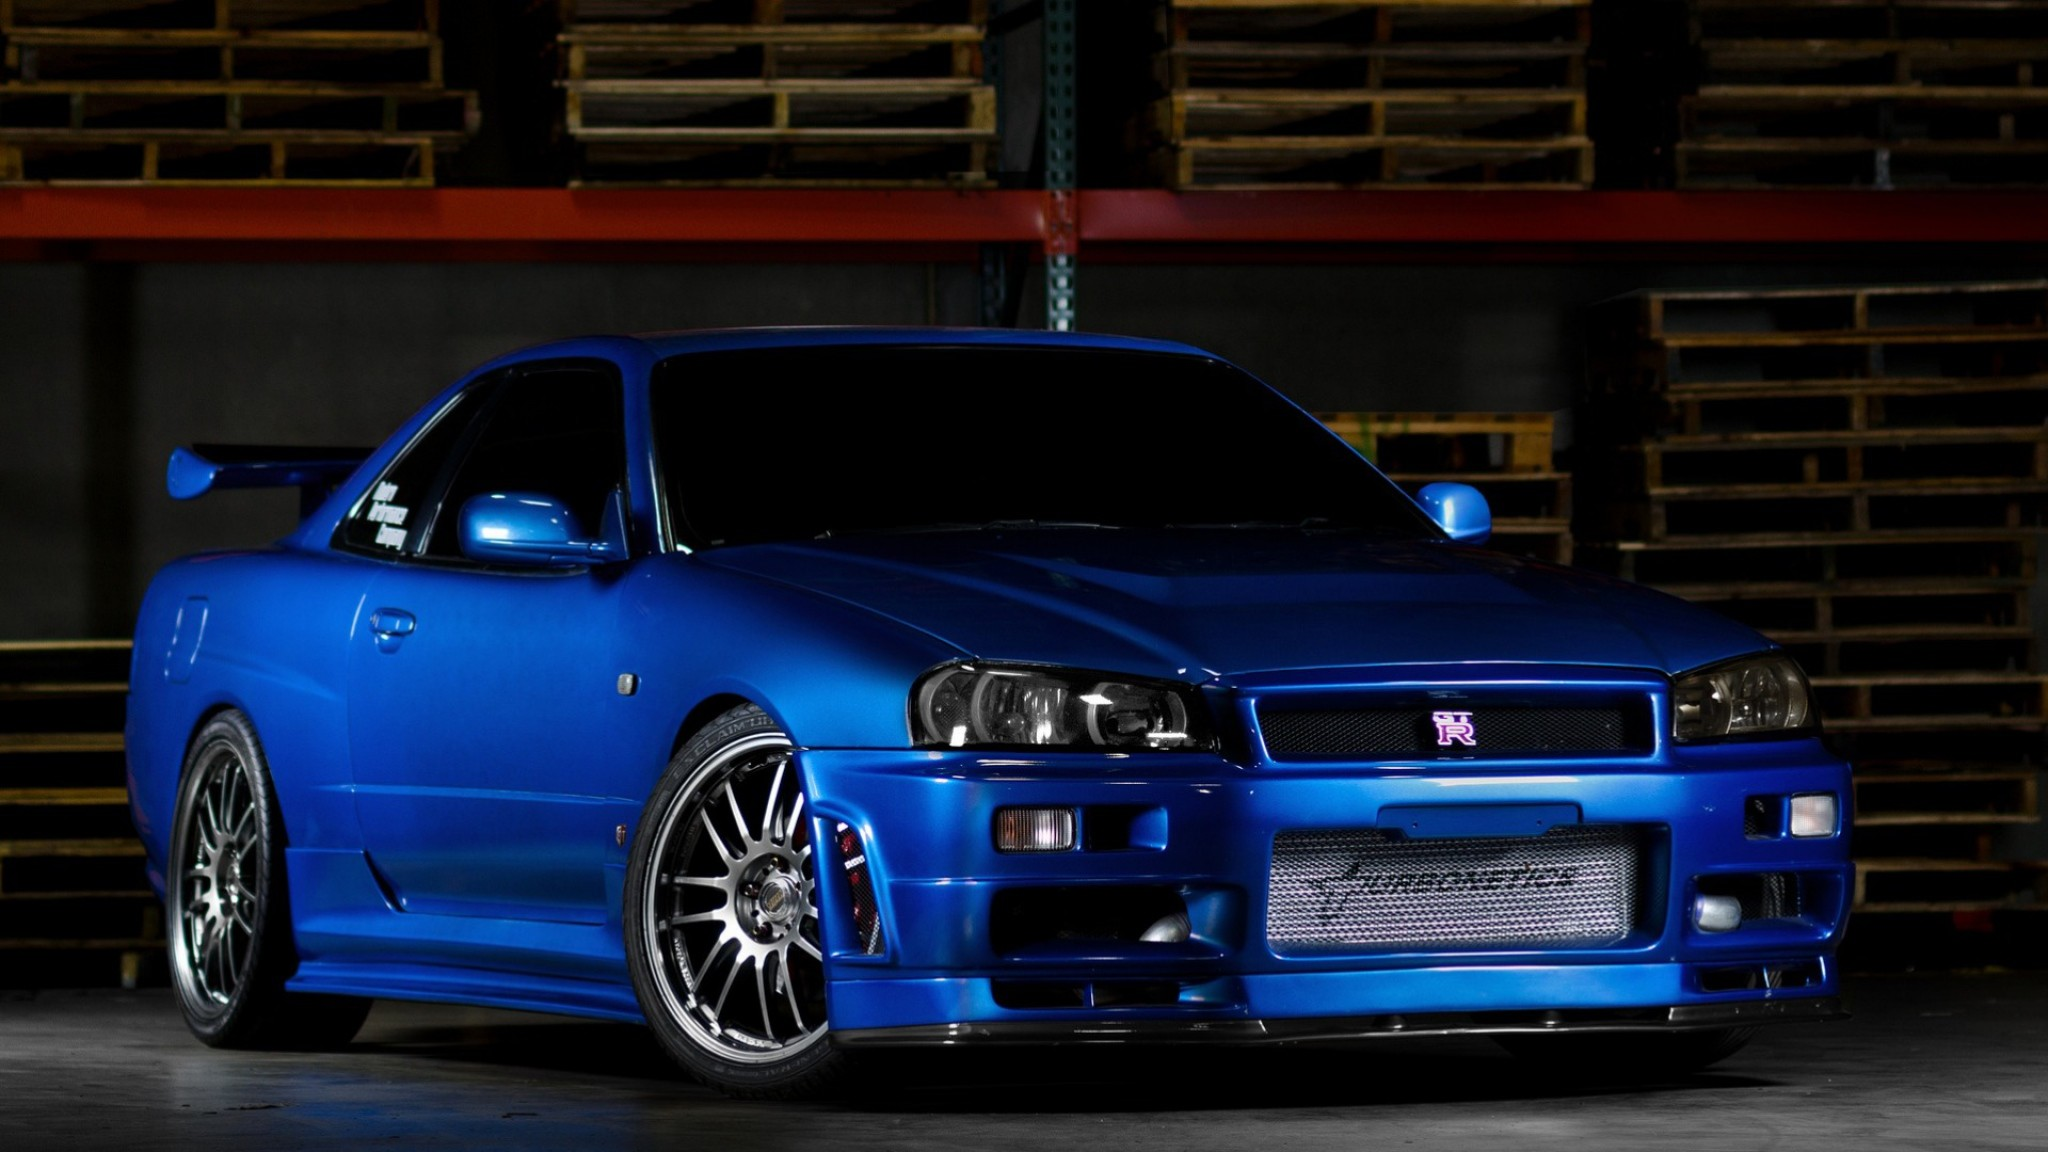 2048x1152 Preview wallpaper nissan skyline, gtr, r34, blue, front view